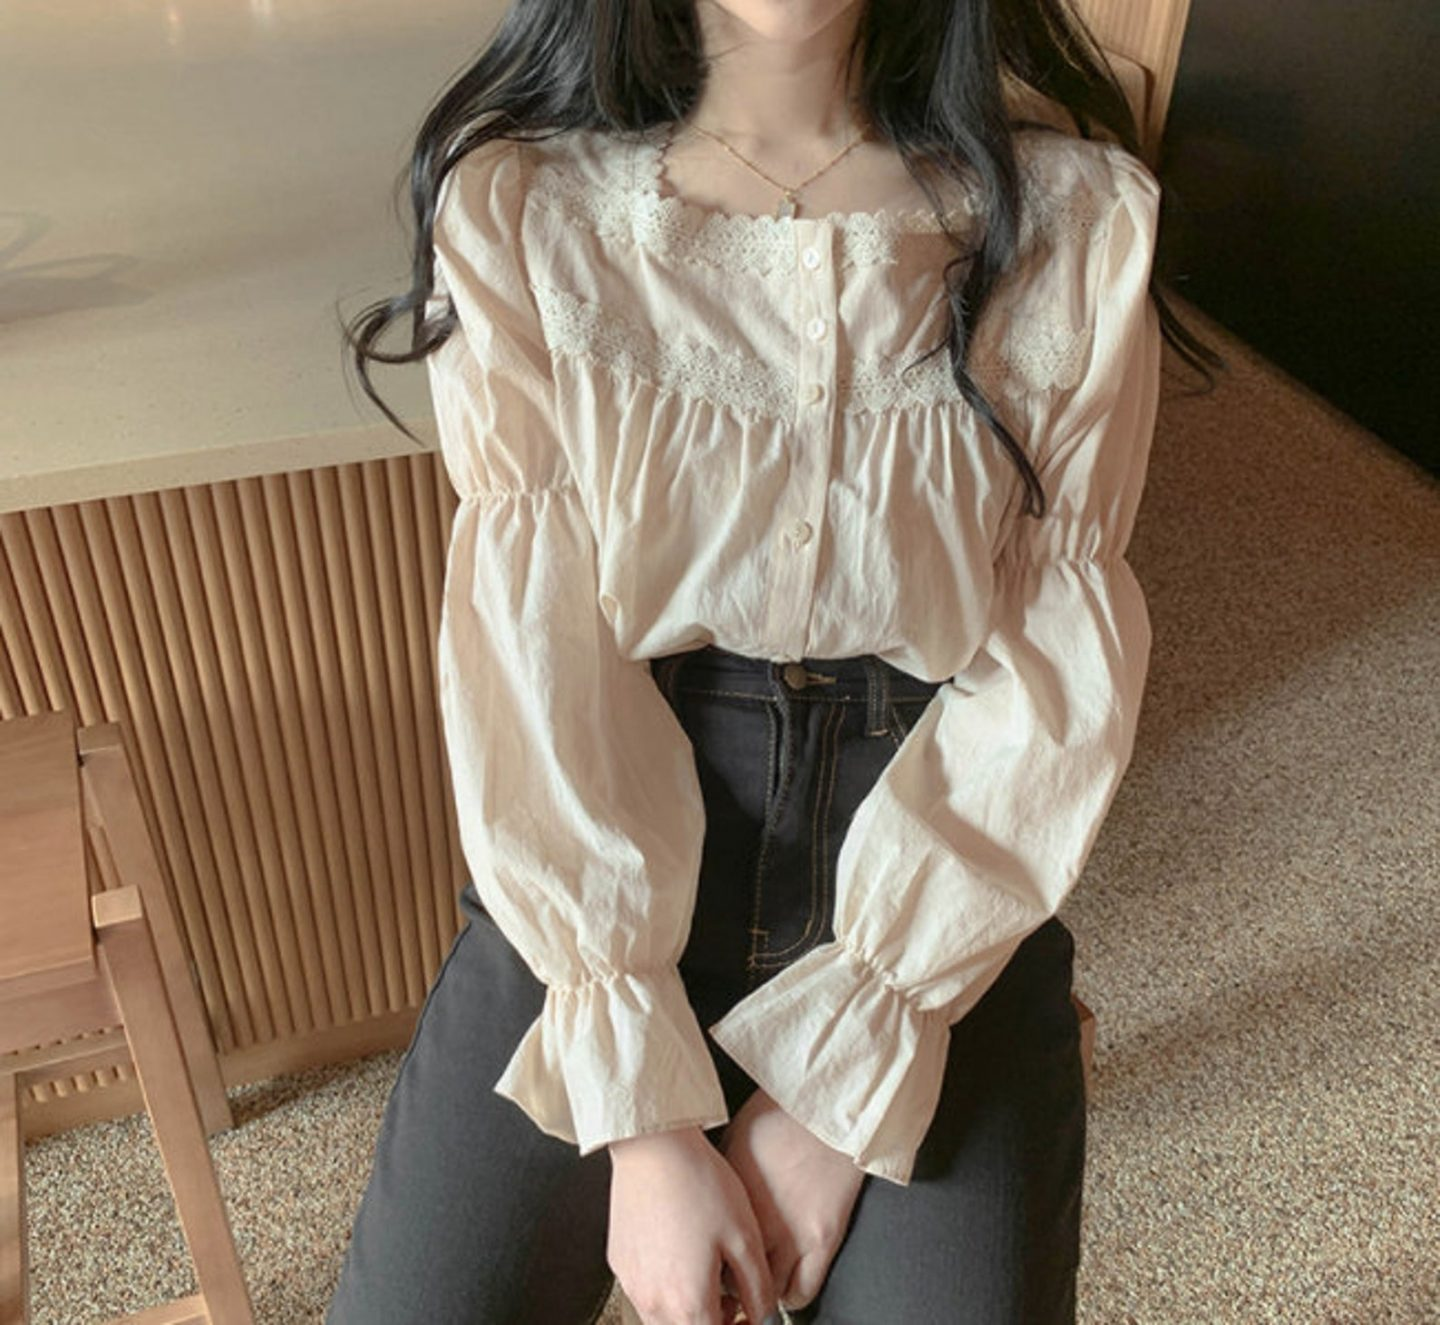 Light academia Victorian blouse with lace